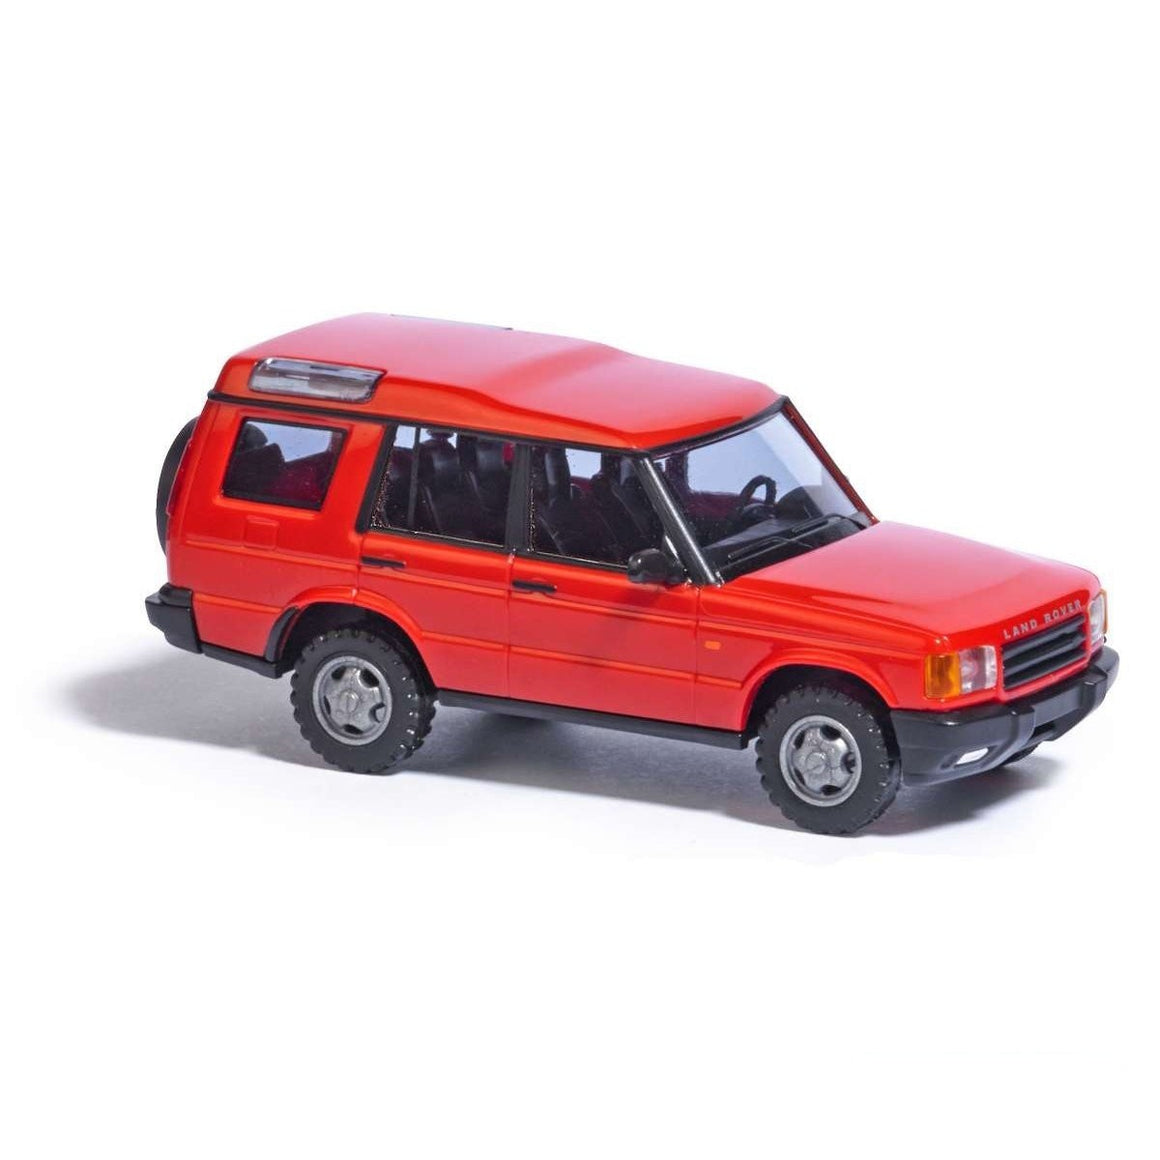 HO Scale: 1998 - 2004 Land Rover Discovery - Red